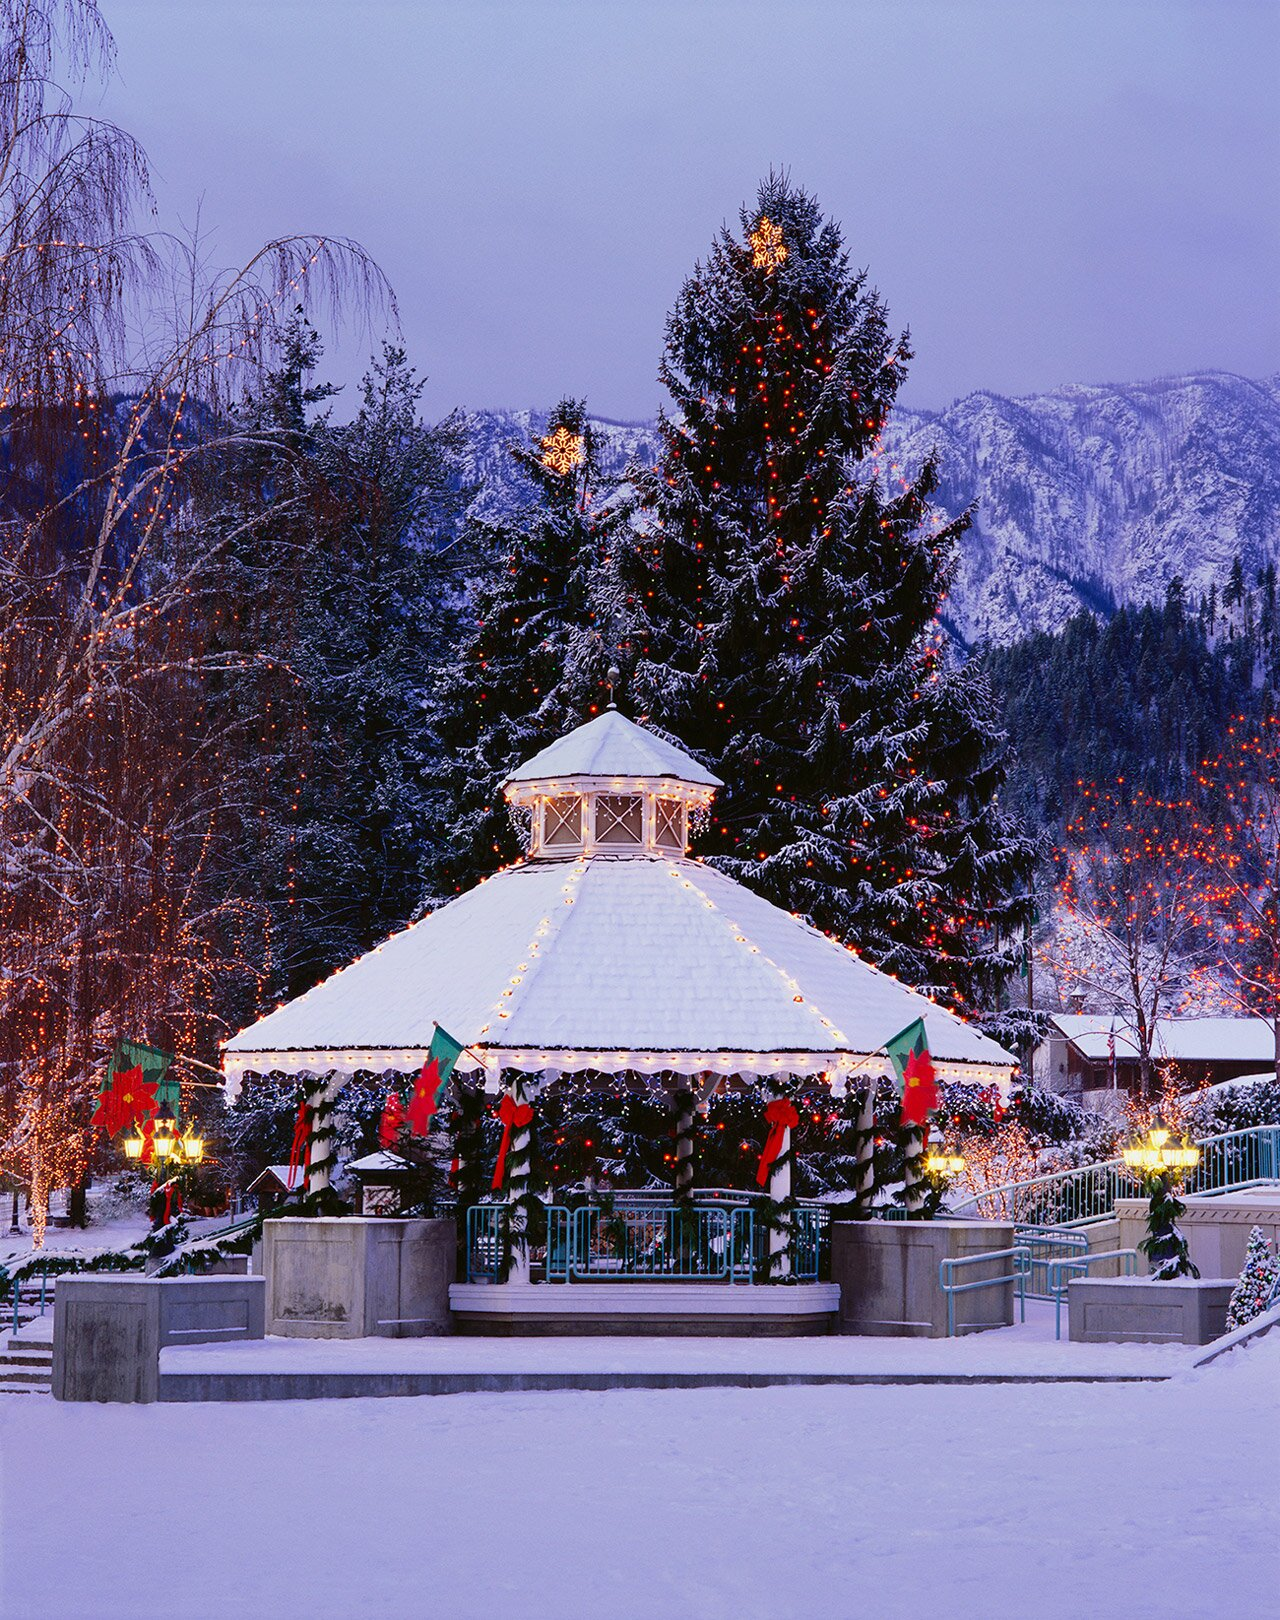 Best Christmas Towns.The Most Charming Small Towns To Visit During The Christmas